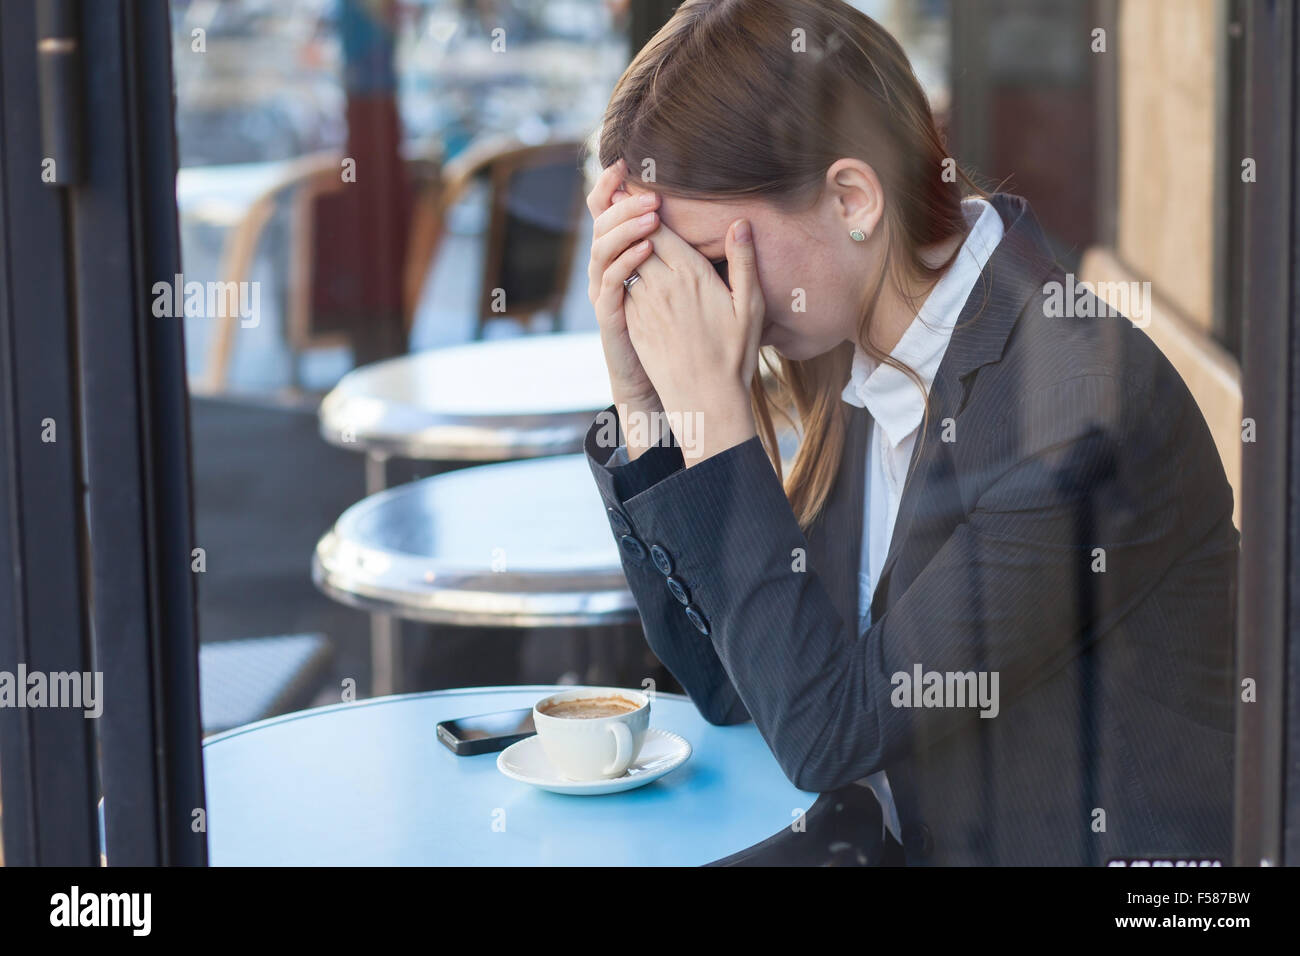 woman crying in cafe - Stock Image